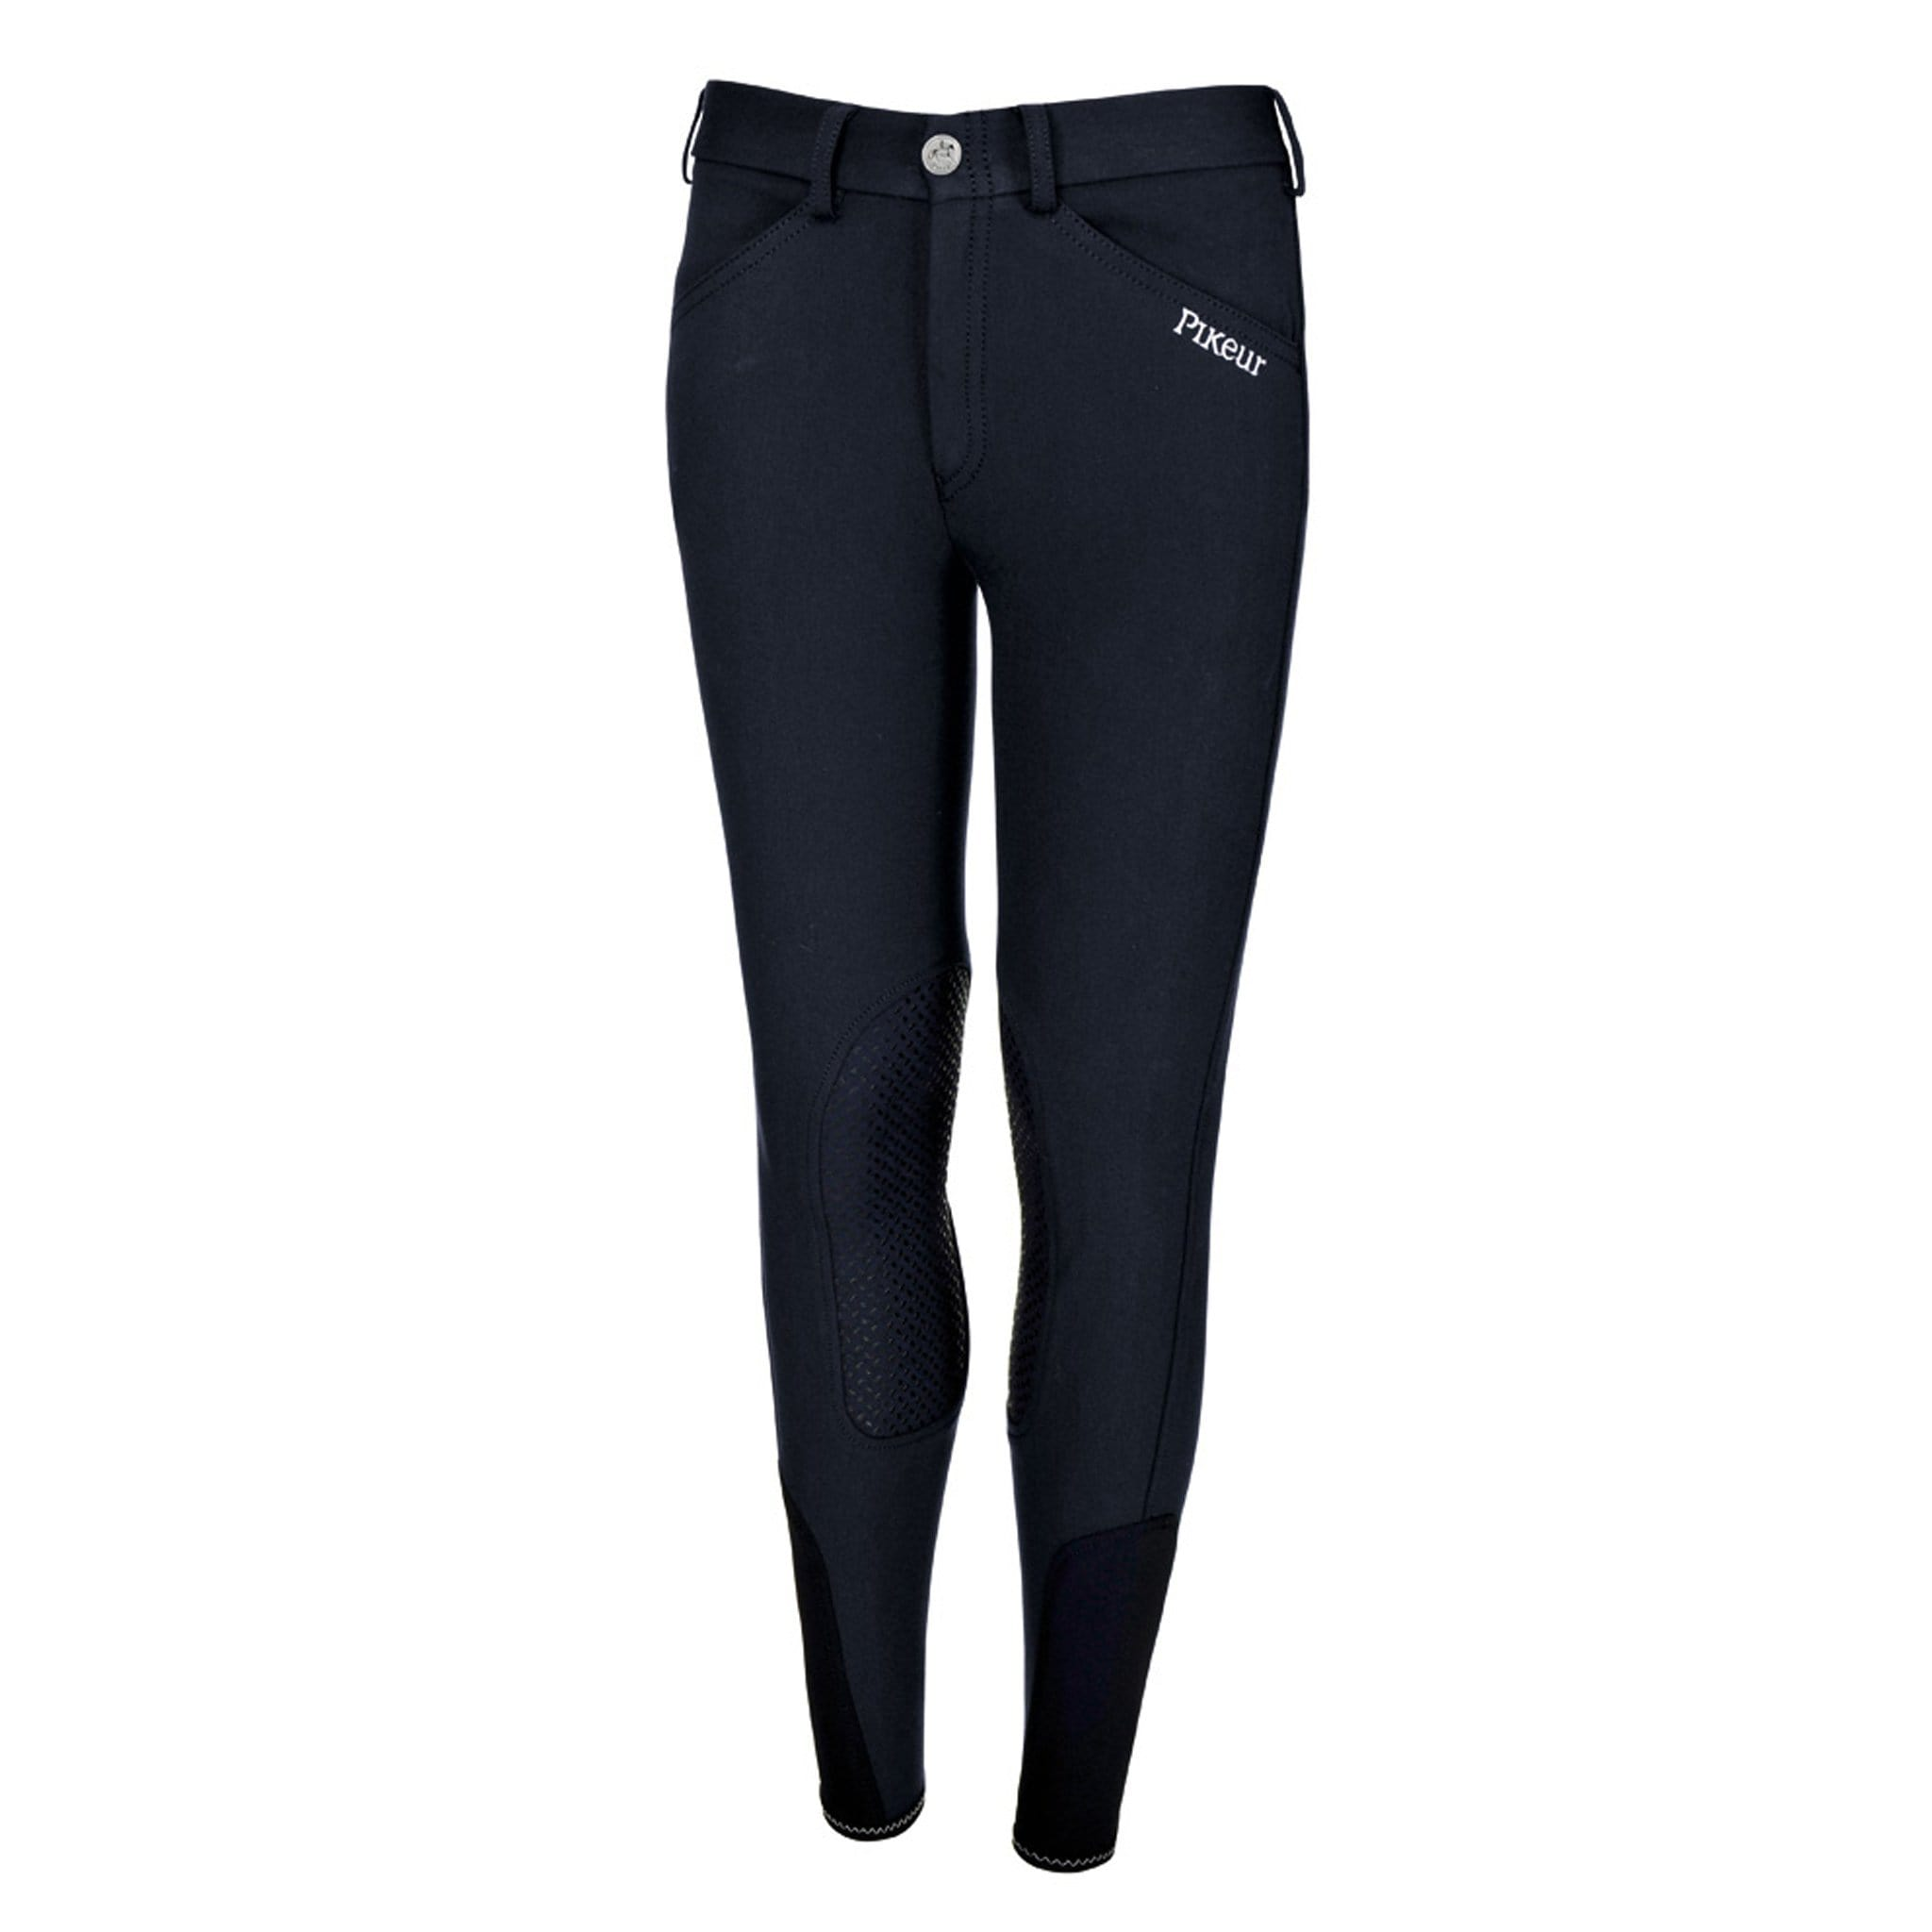 Pikeur Brooklyn Girls Grip Seat Breeches Nightblue Front 149704